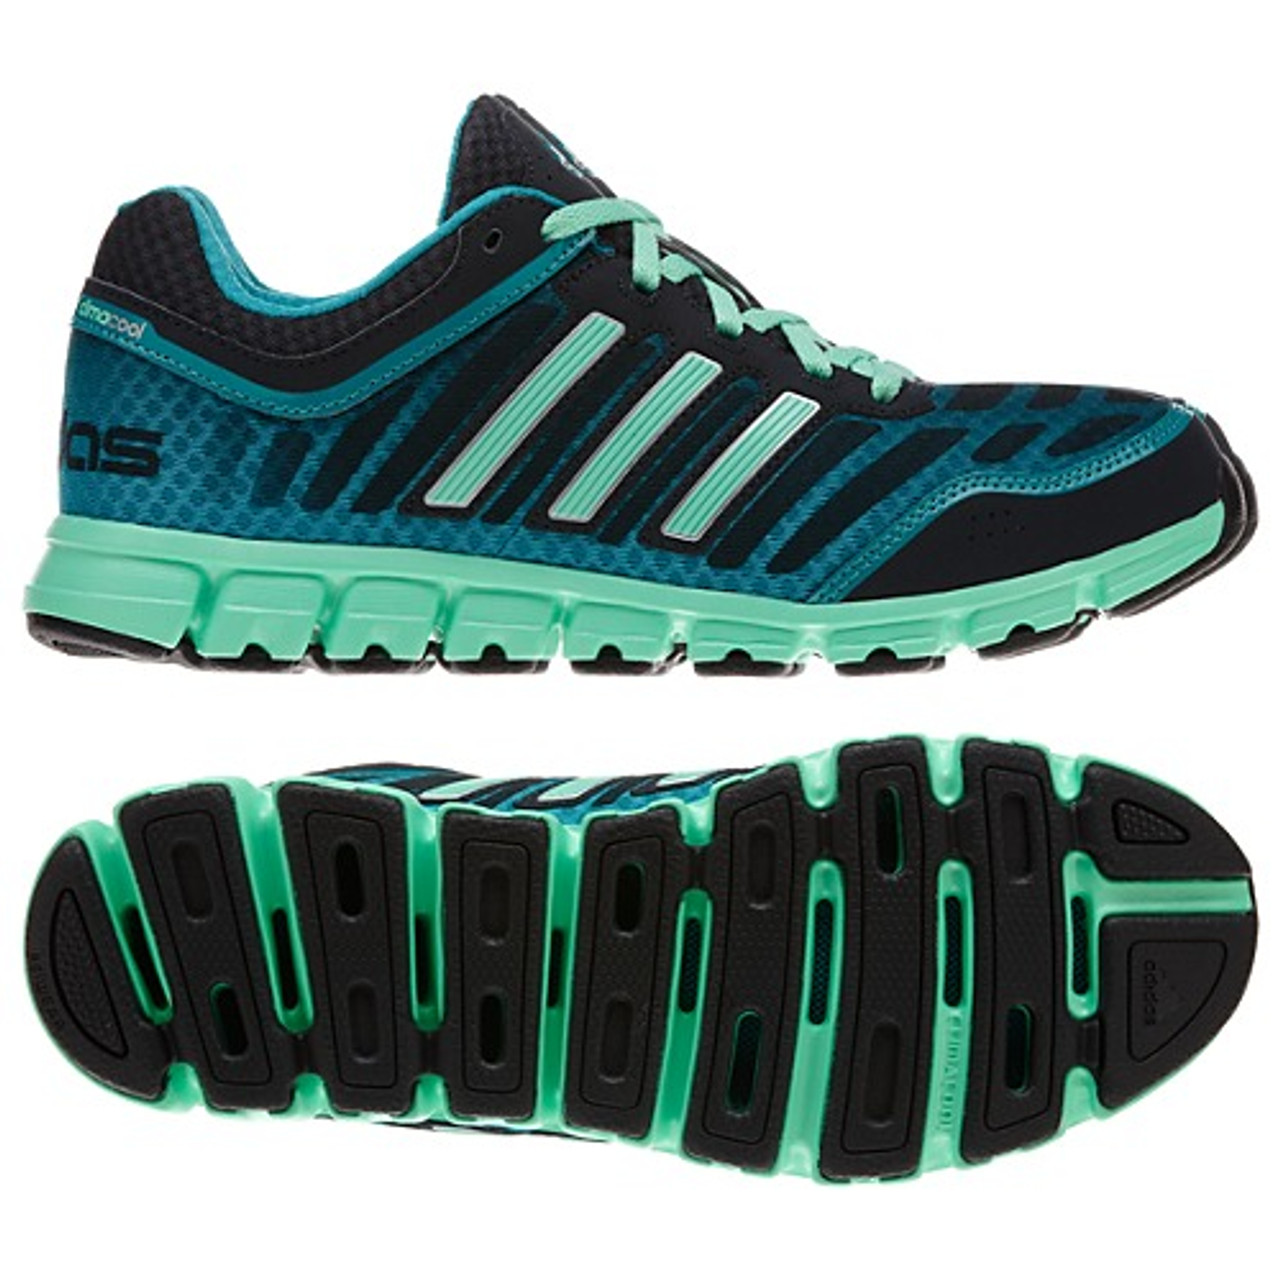 Adidas ClimaCool Aerate 2 Womens Running Shoes